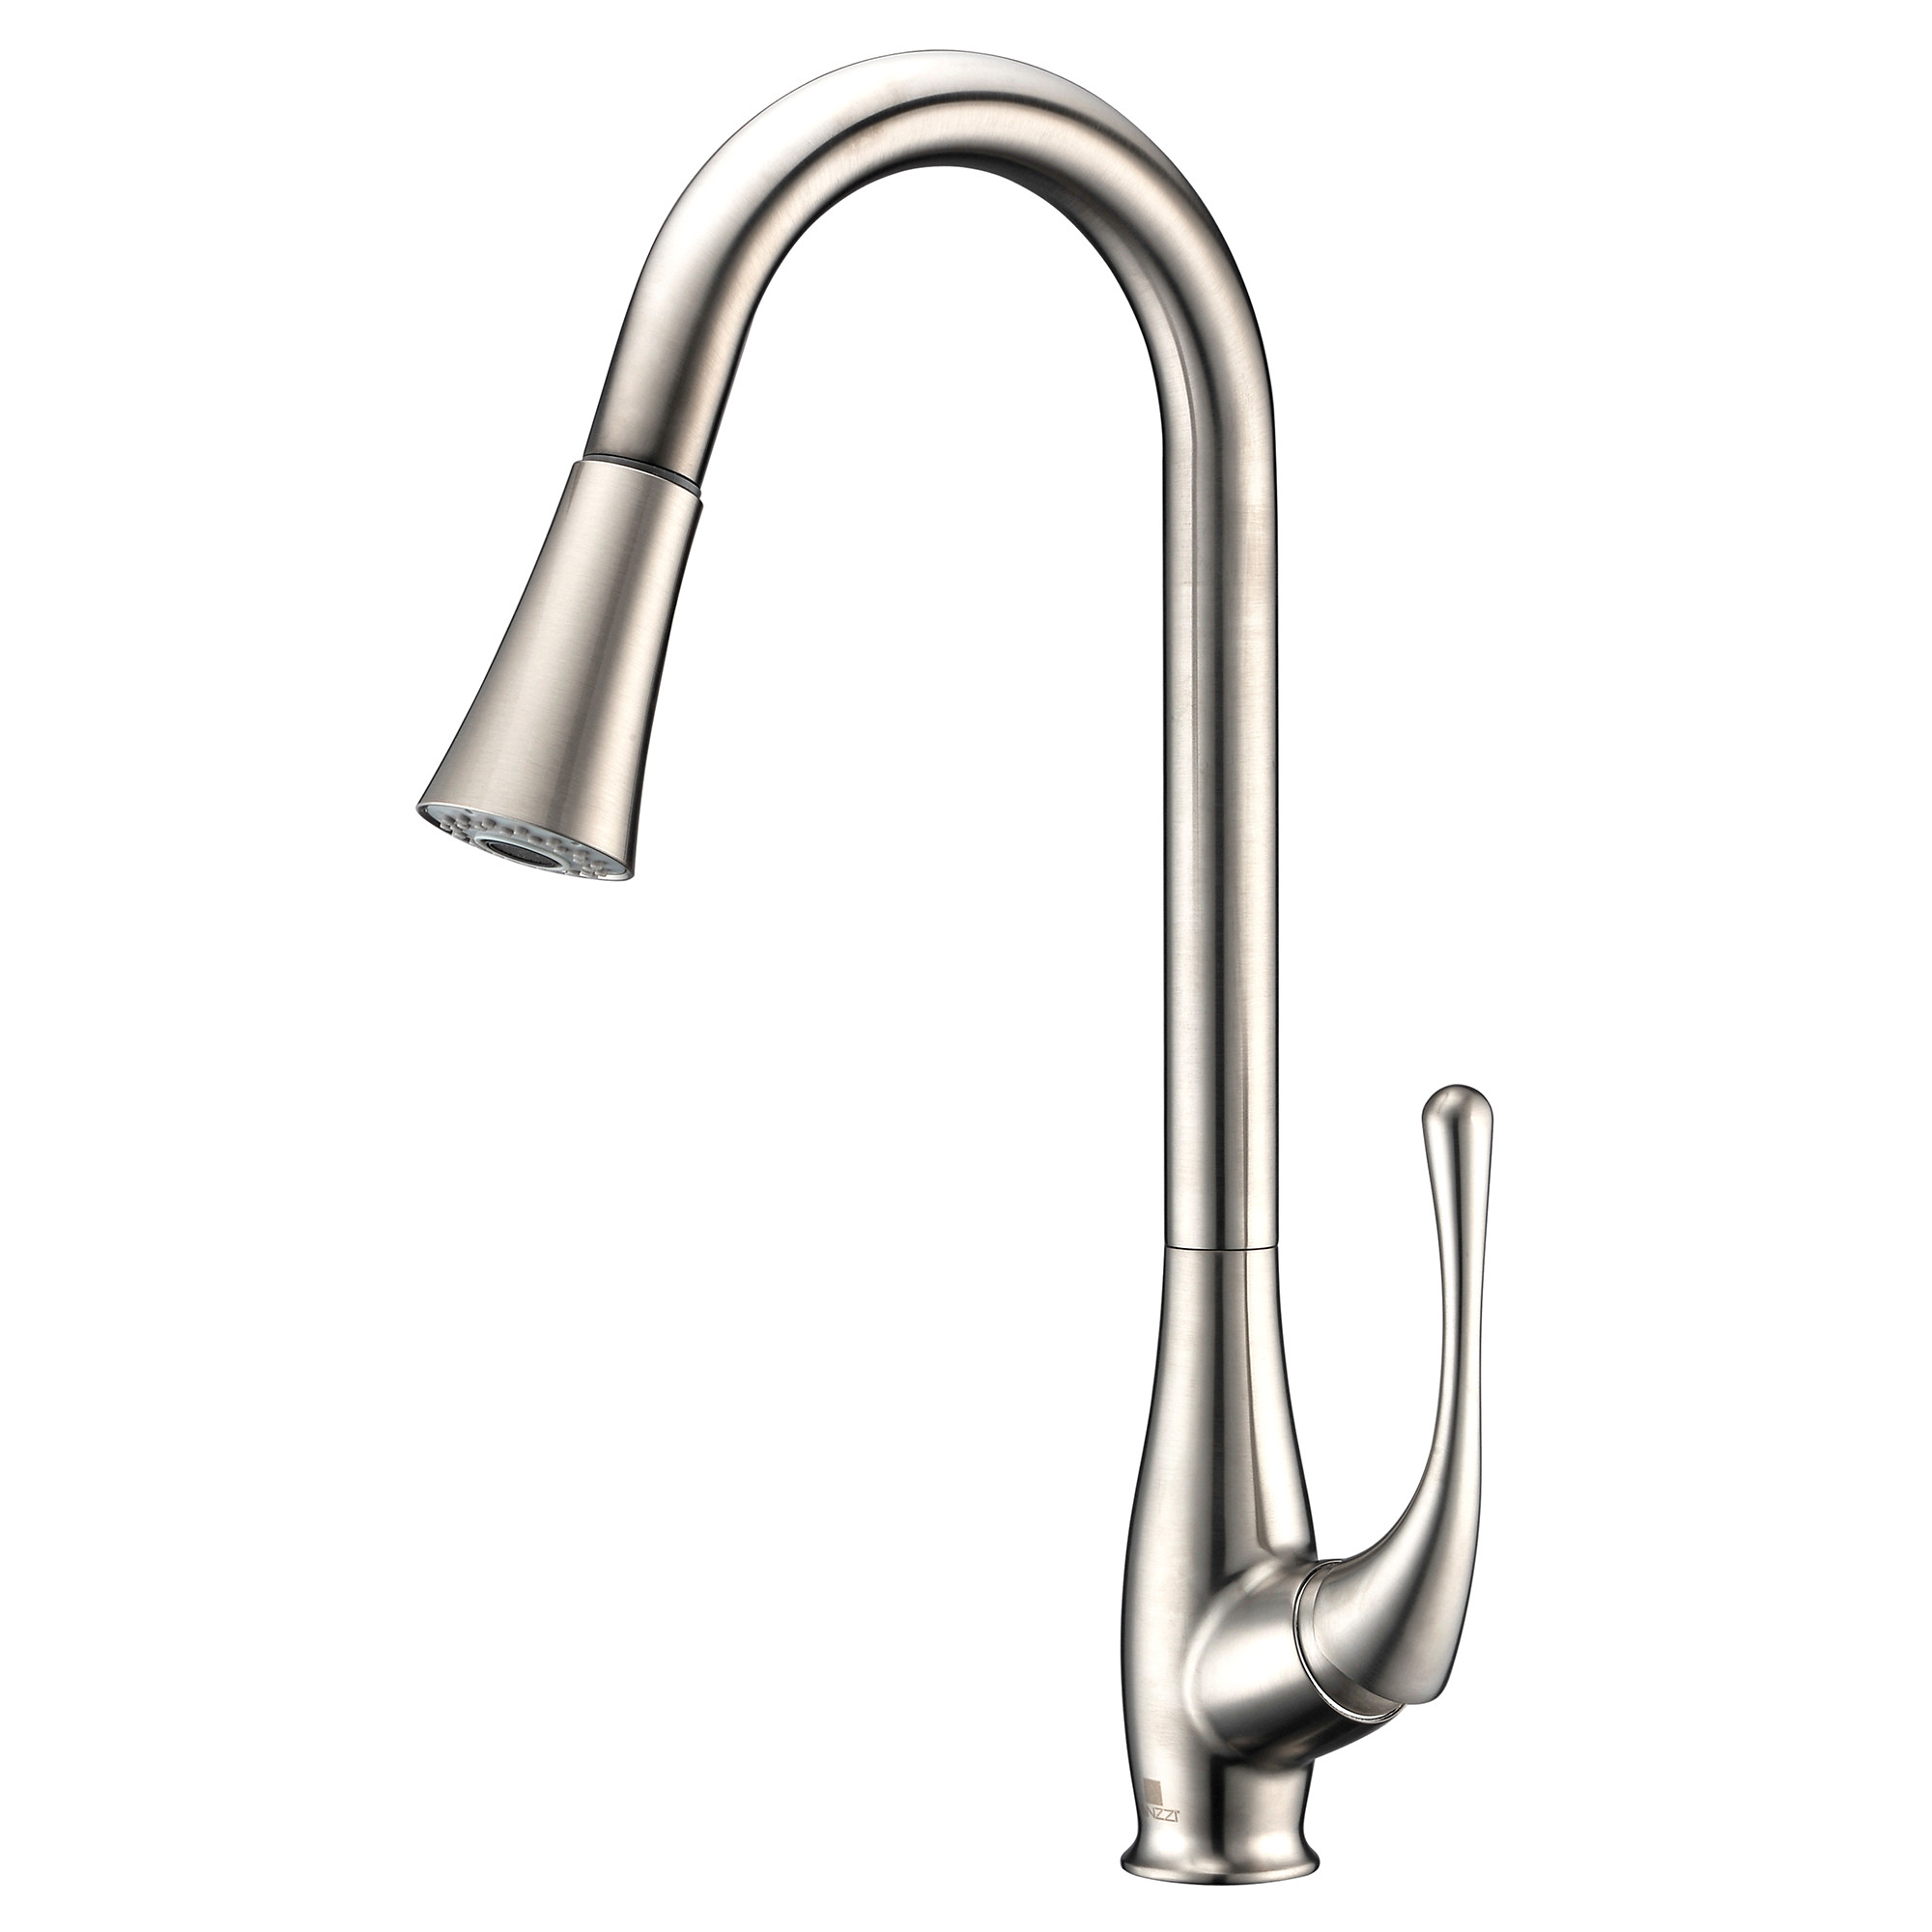 ANZZI KF-AZ042 Singer Brass Pull Down Kitchen Faucet In Polished Chrome